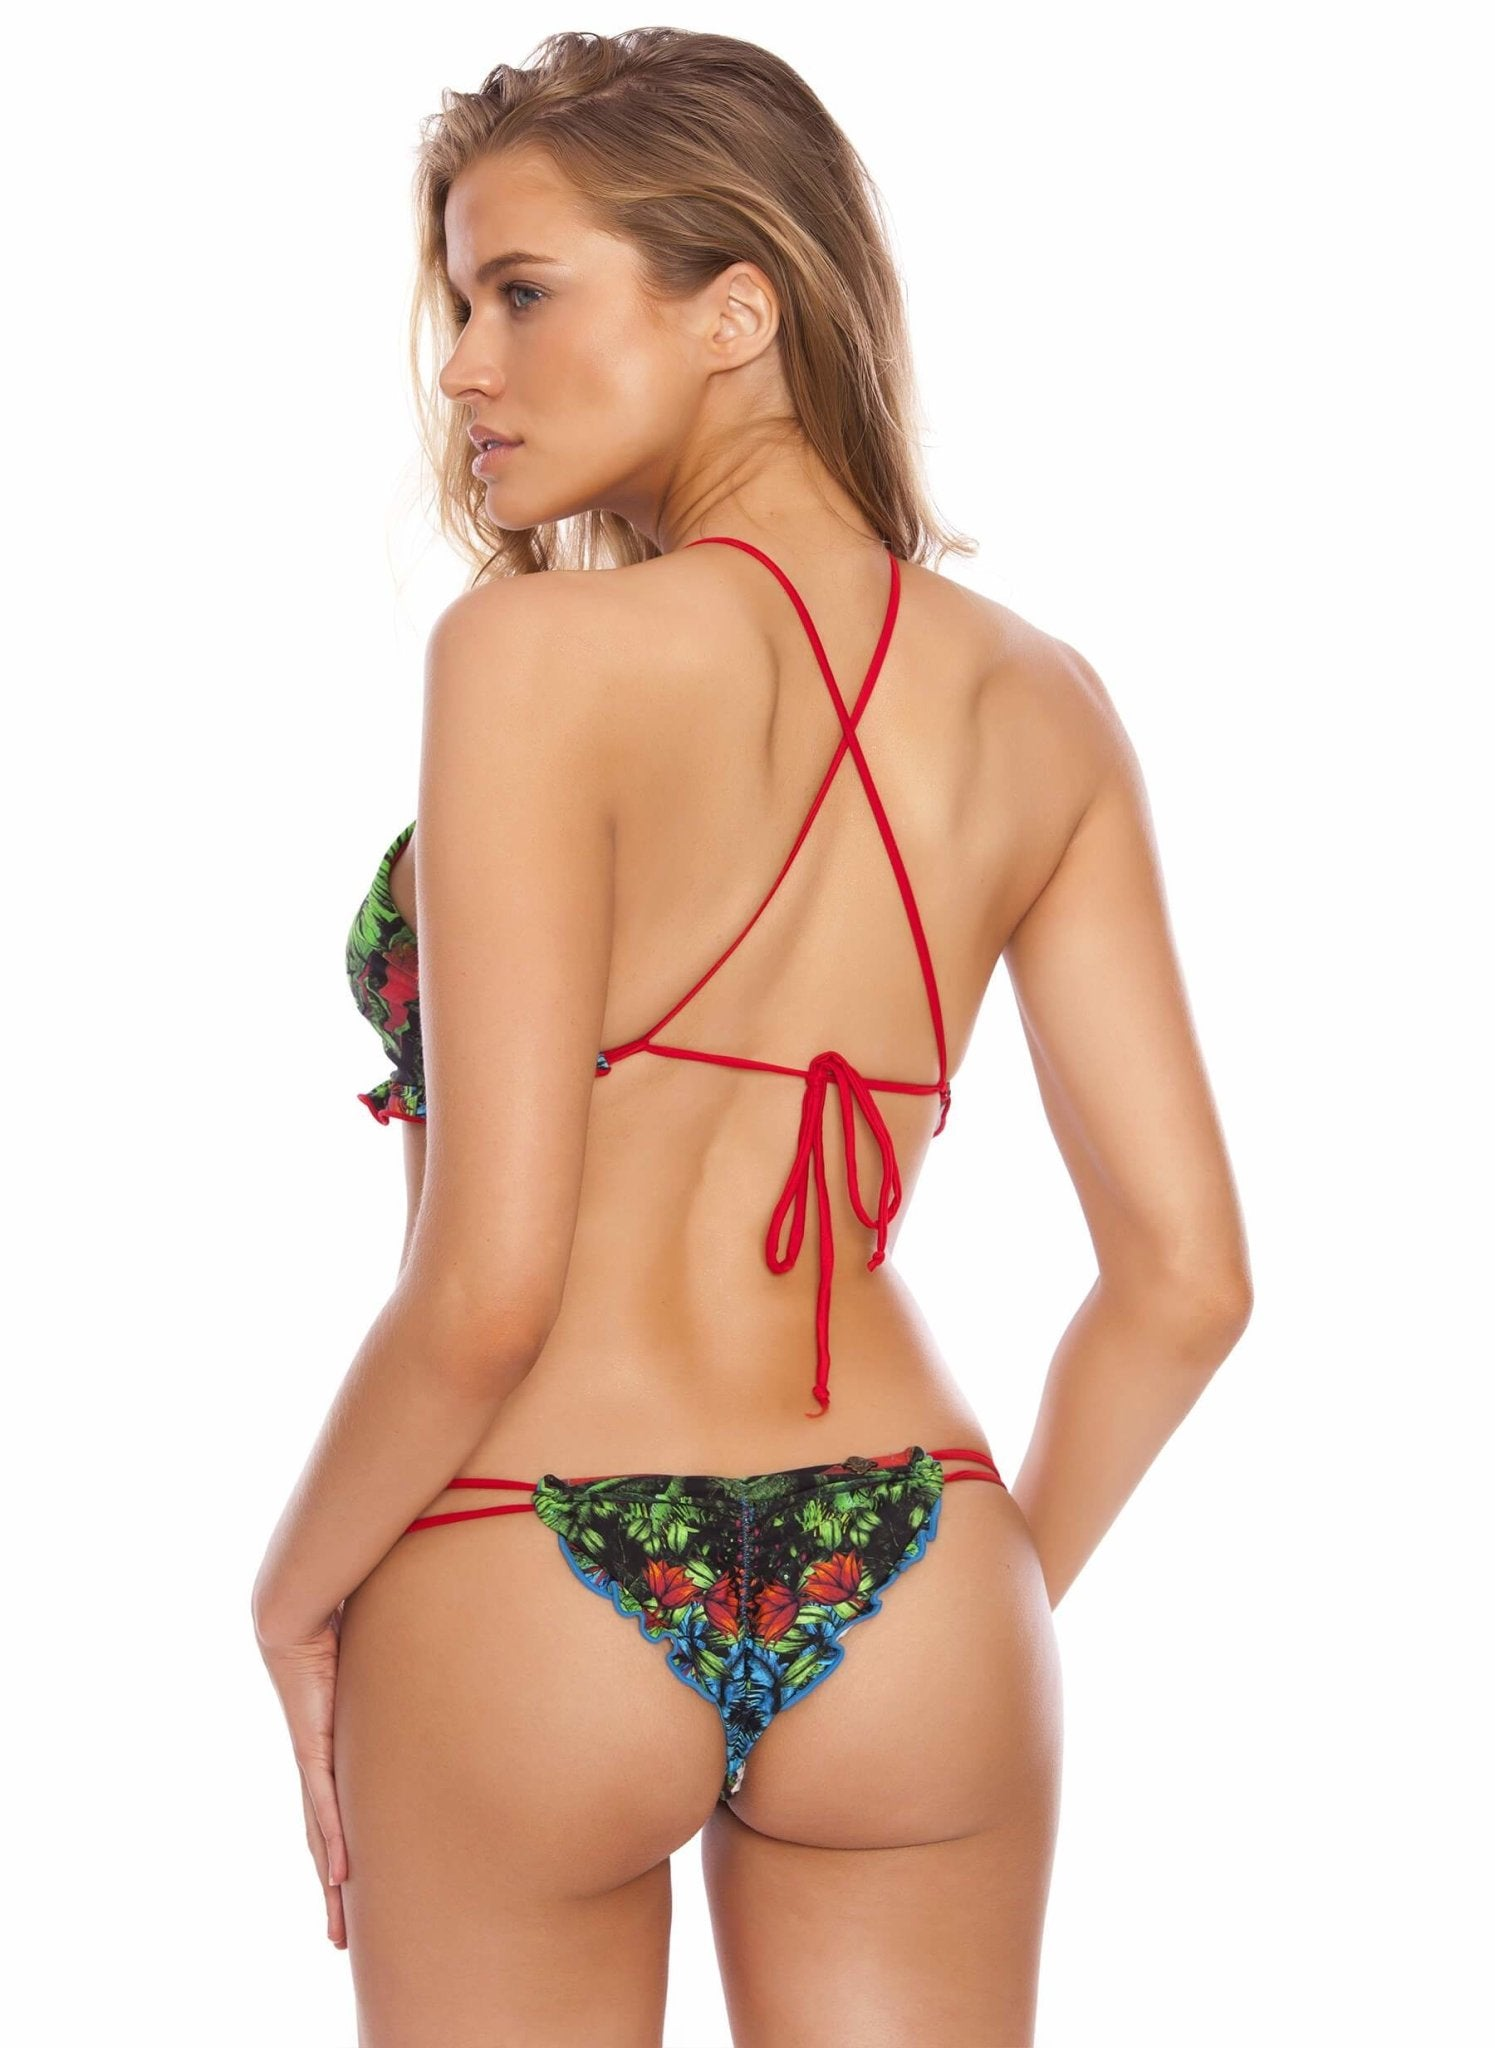 Rainforest Ruffles - Jungle Reversible Brazilian Bikini Bottom - Salty Mermaid Swim